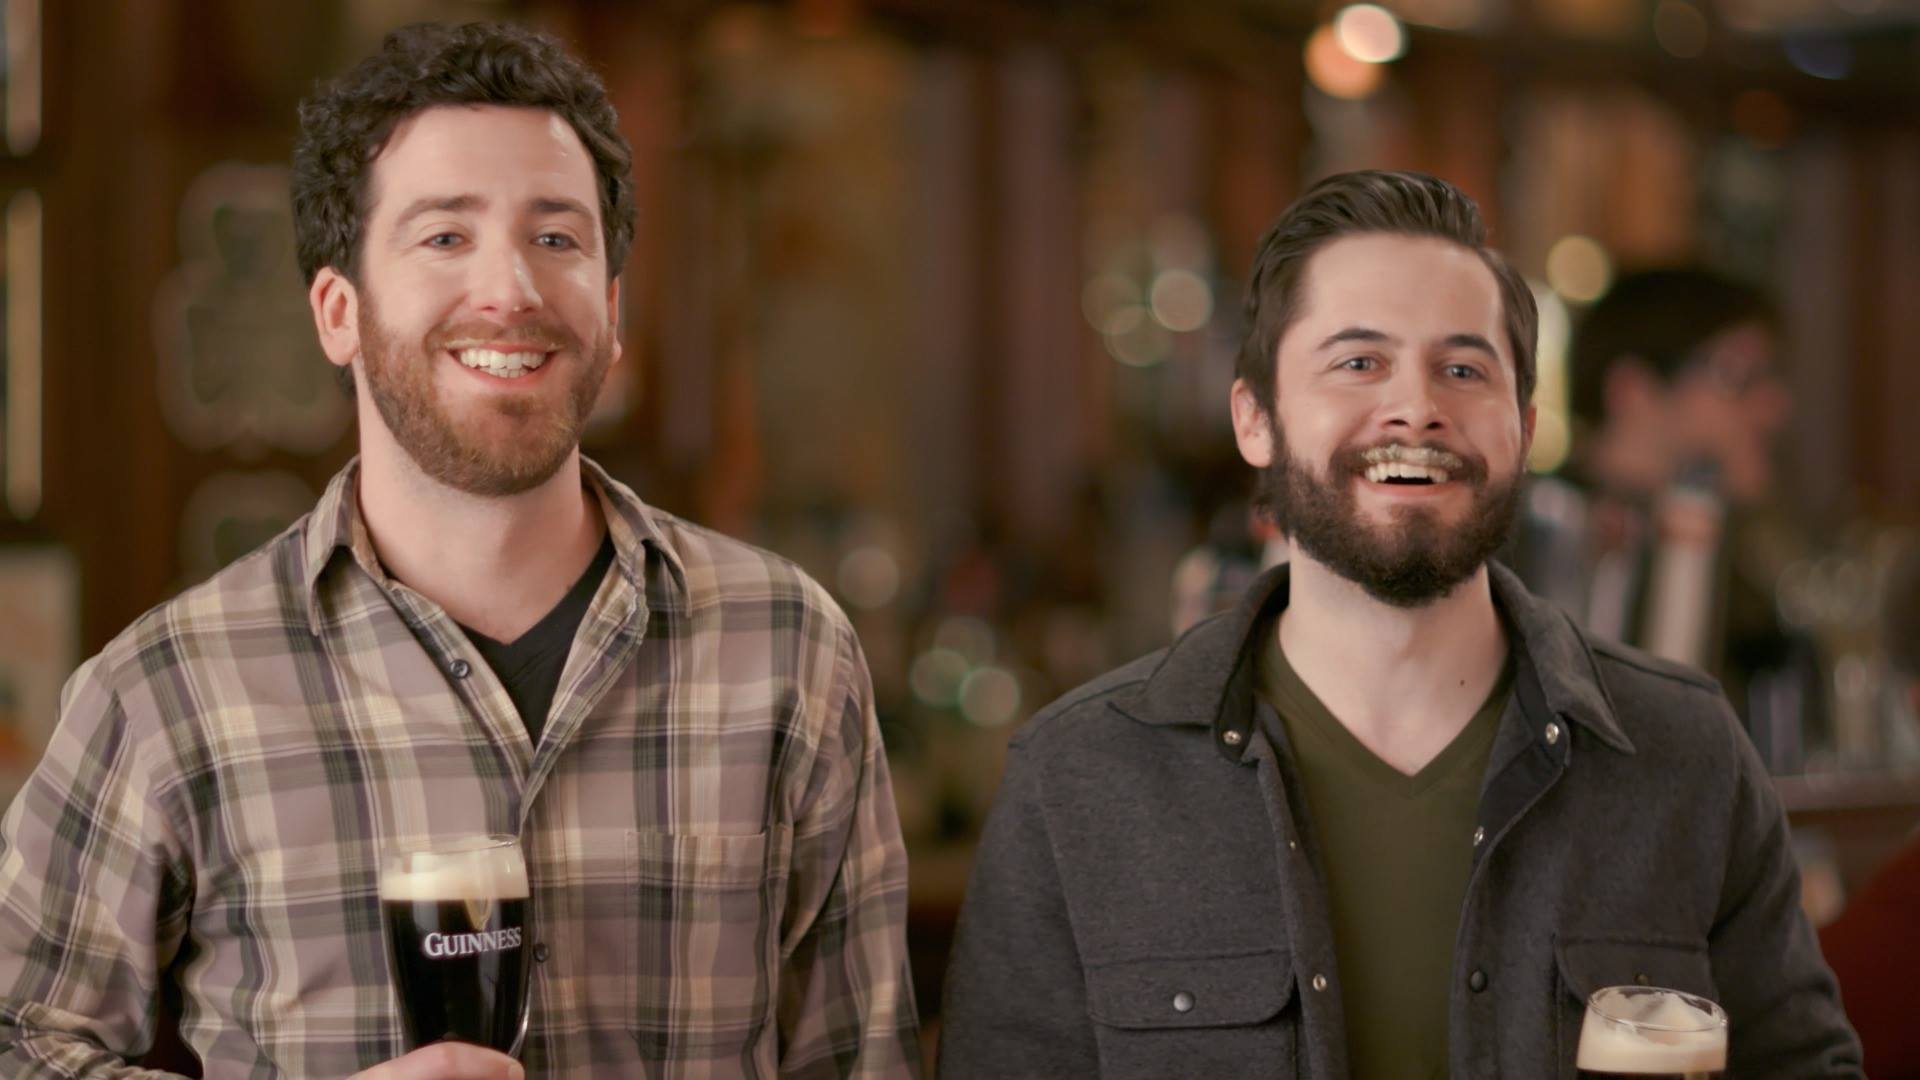 Introducing Guinnetics Testing by Guinness